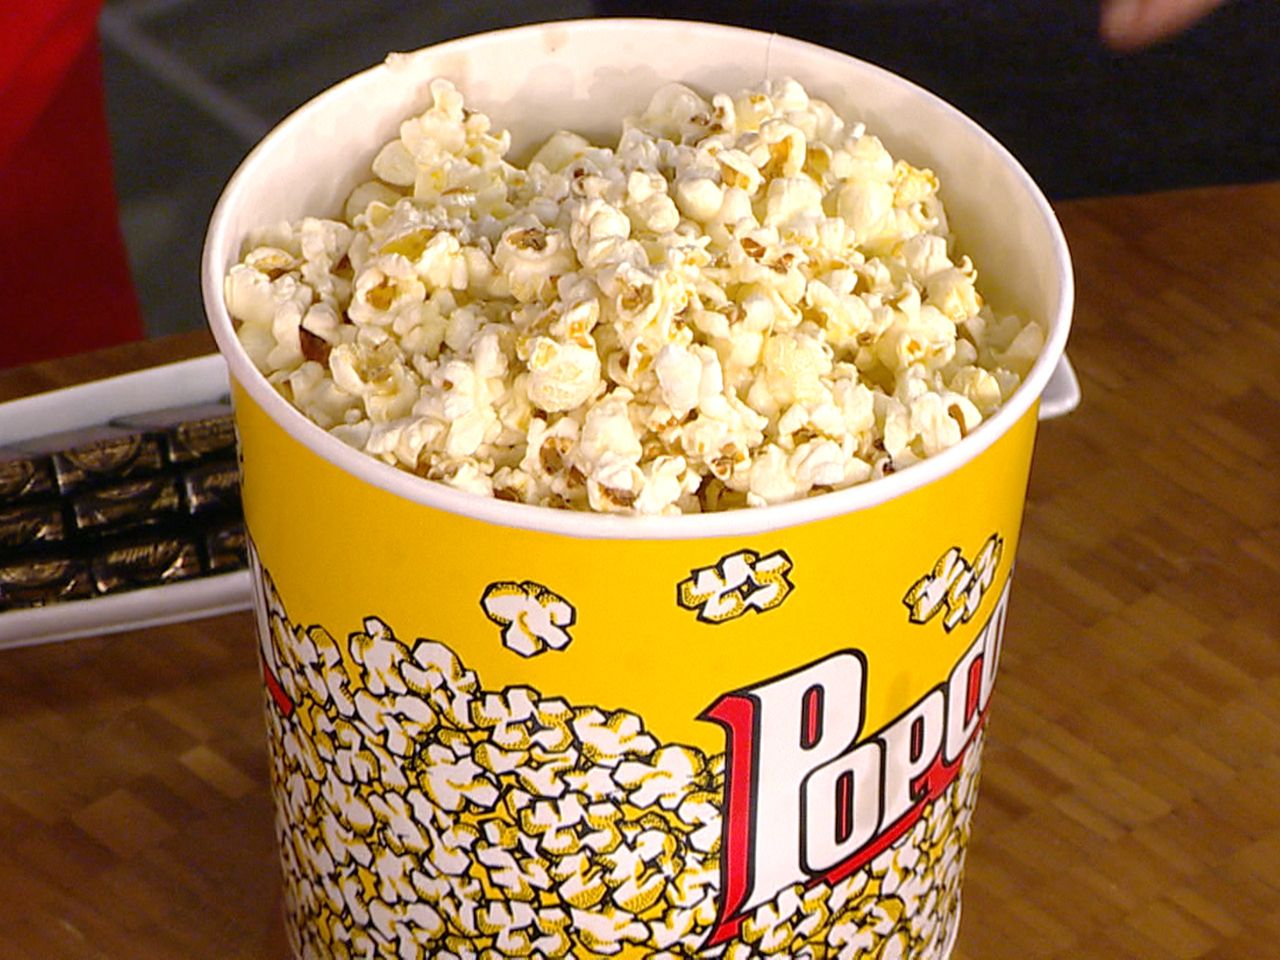 Butter not! Movie popcorn contains whole stick